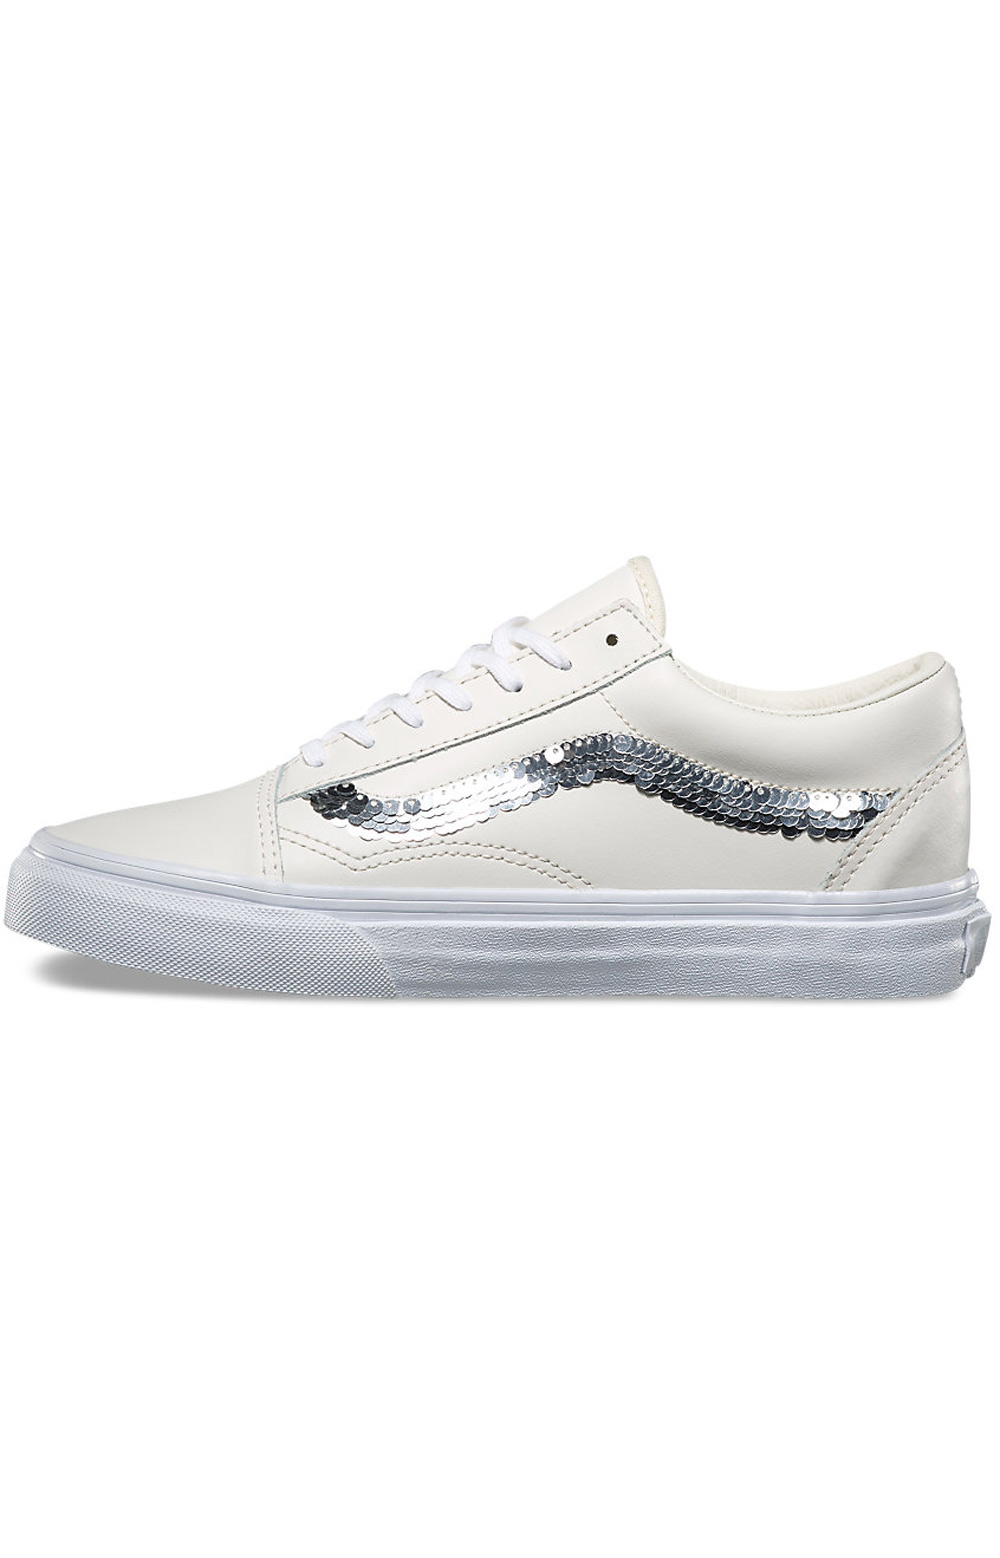 (8G1QVY) Old Skool Shiny Sequins Shoe - Marshmallow  4